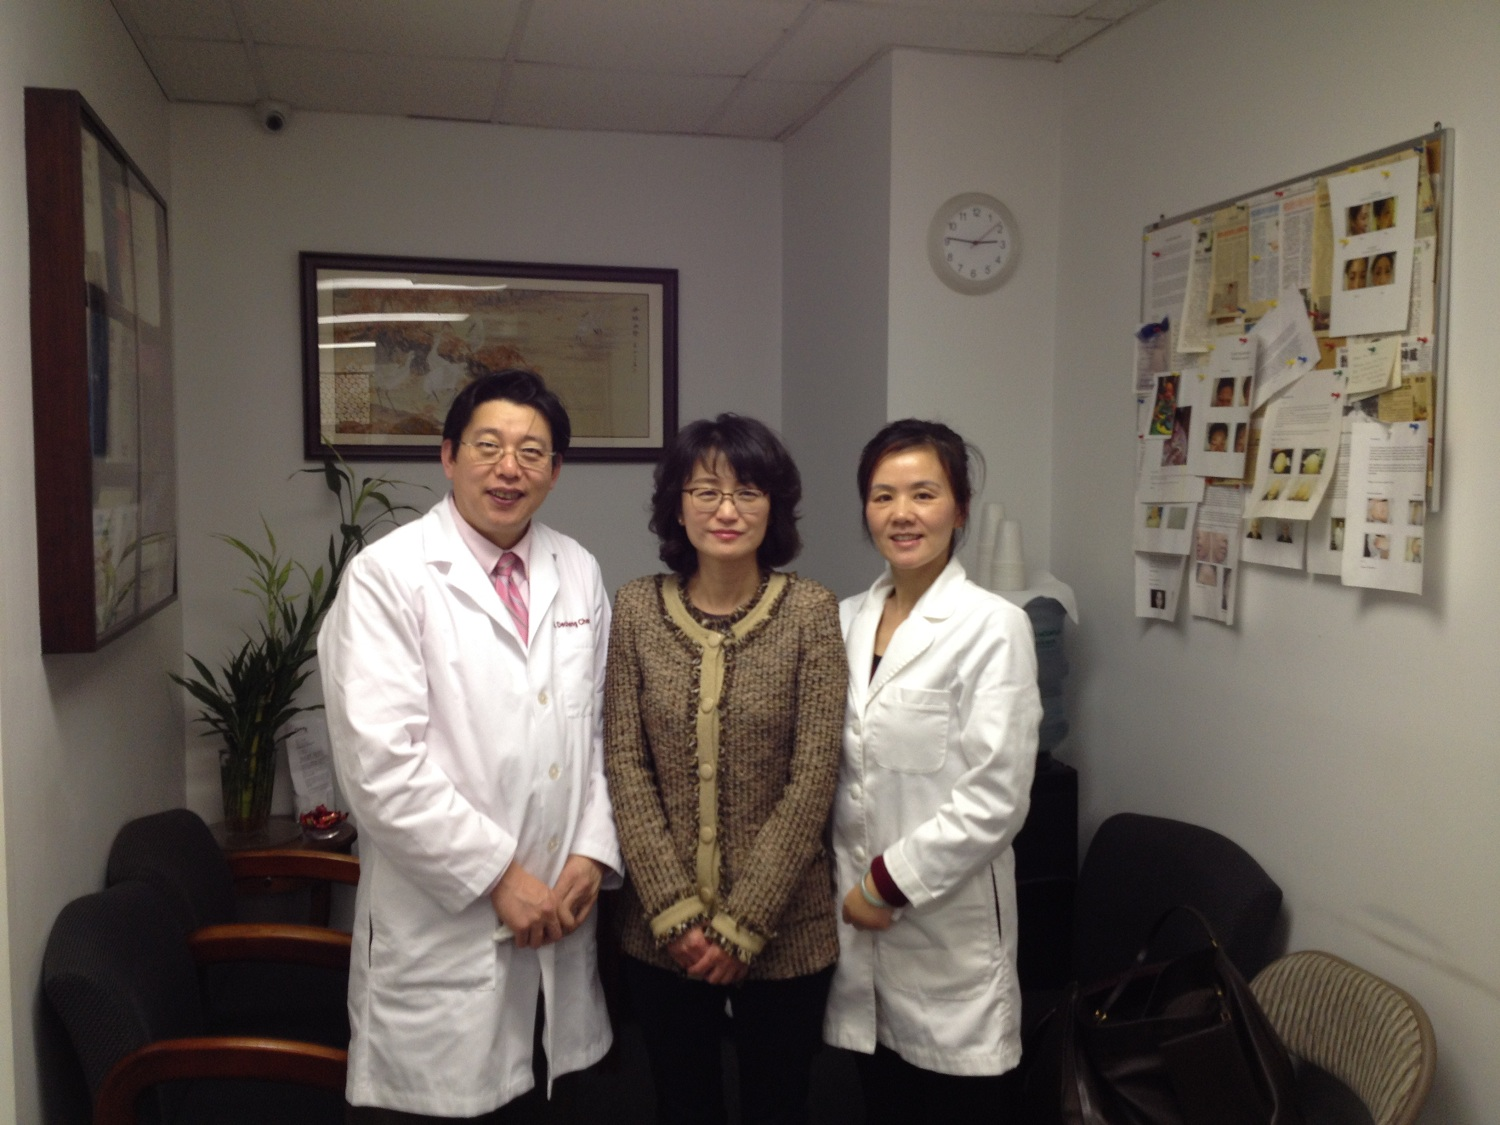 The Korean ambassador's wife, Ji Yeong Pak came to visit our clinic